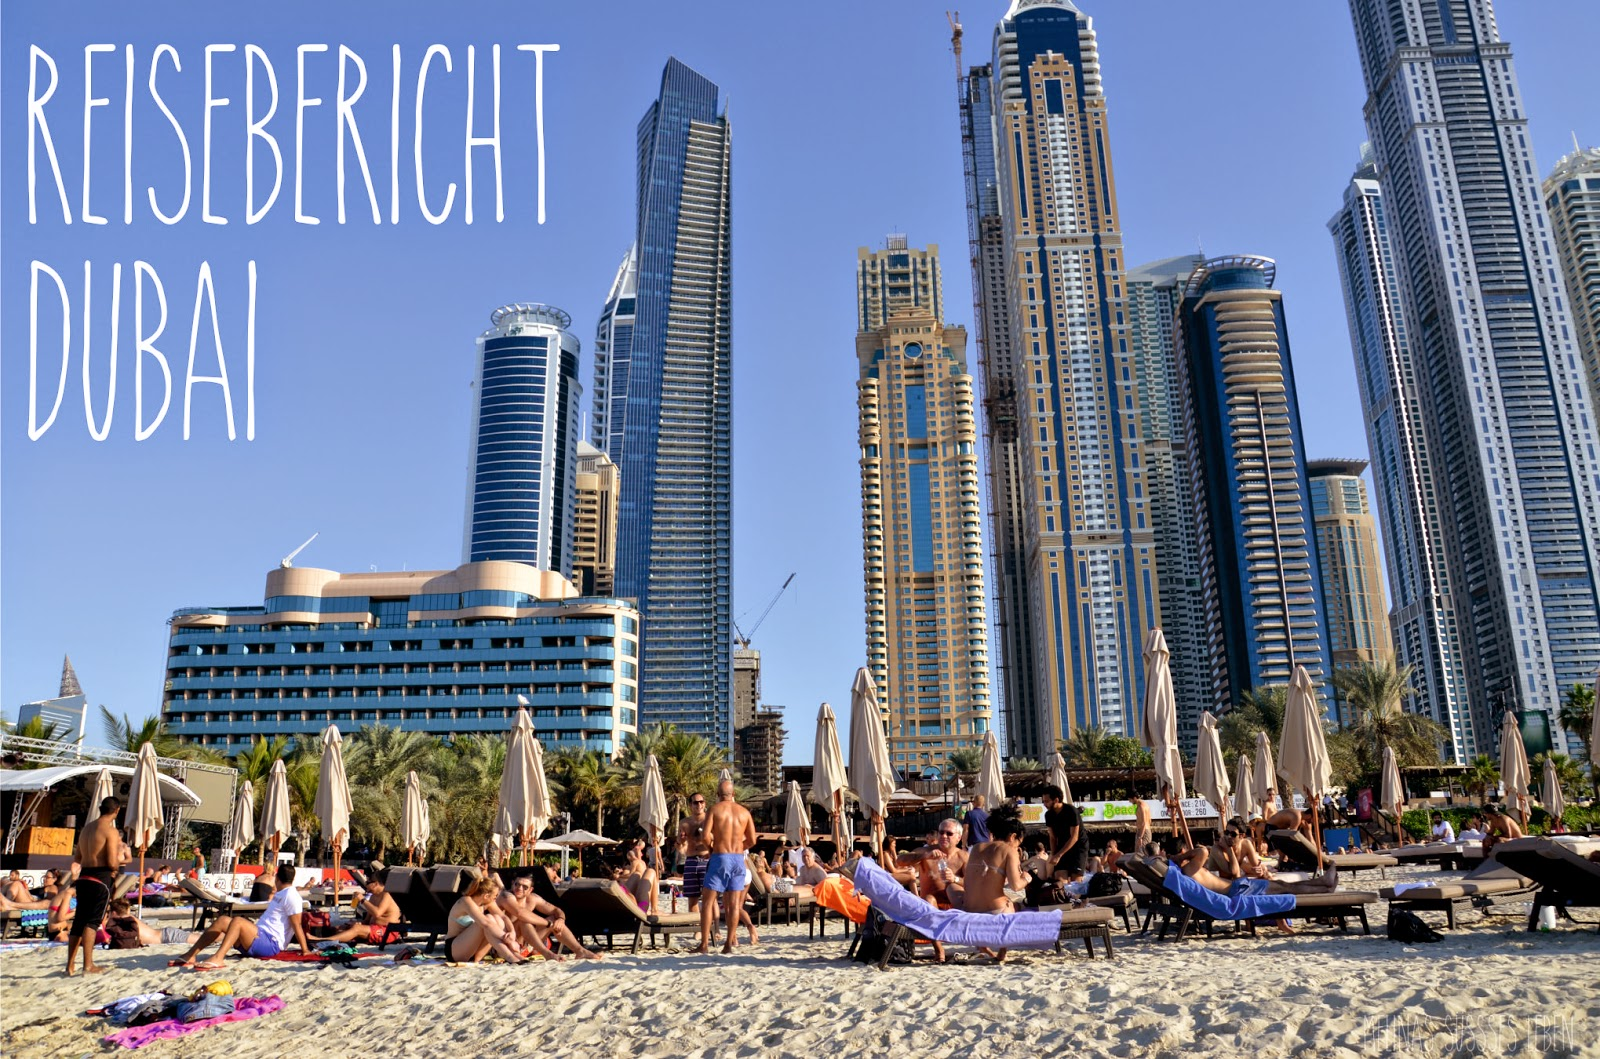 http://melinas-suesses-leben.blogspot.de/2014/08/reisebericht-dubai-what-to-know-about.html